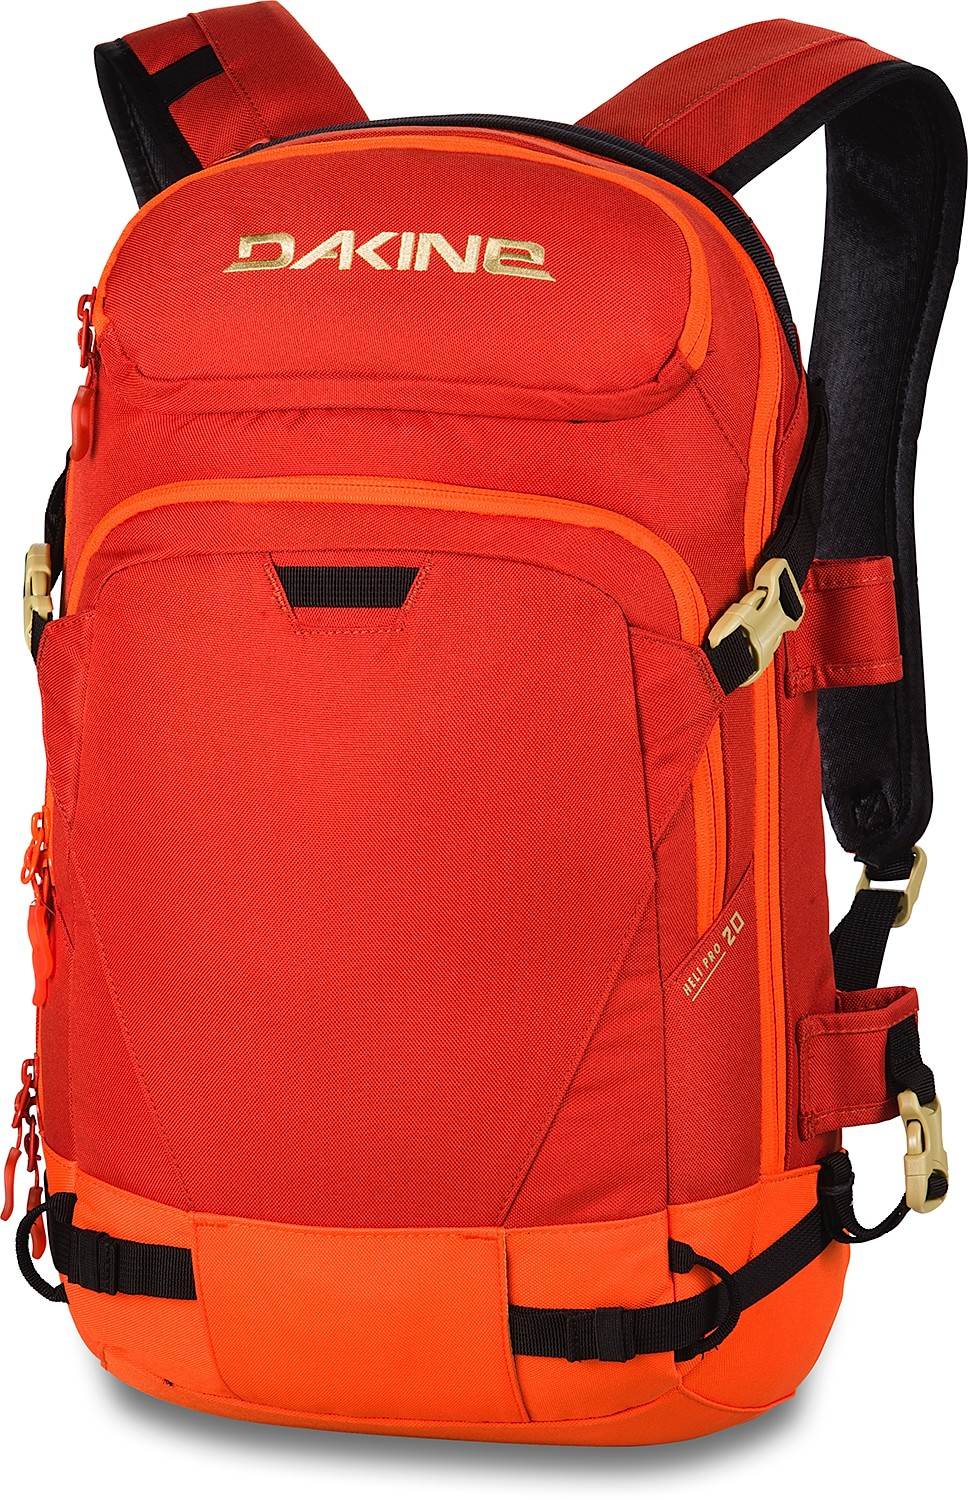 Cheap Dakine Backpacks f5xHCoWP